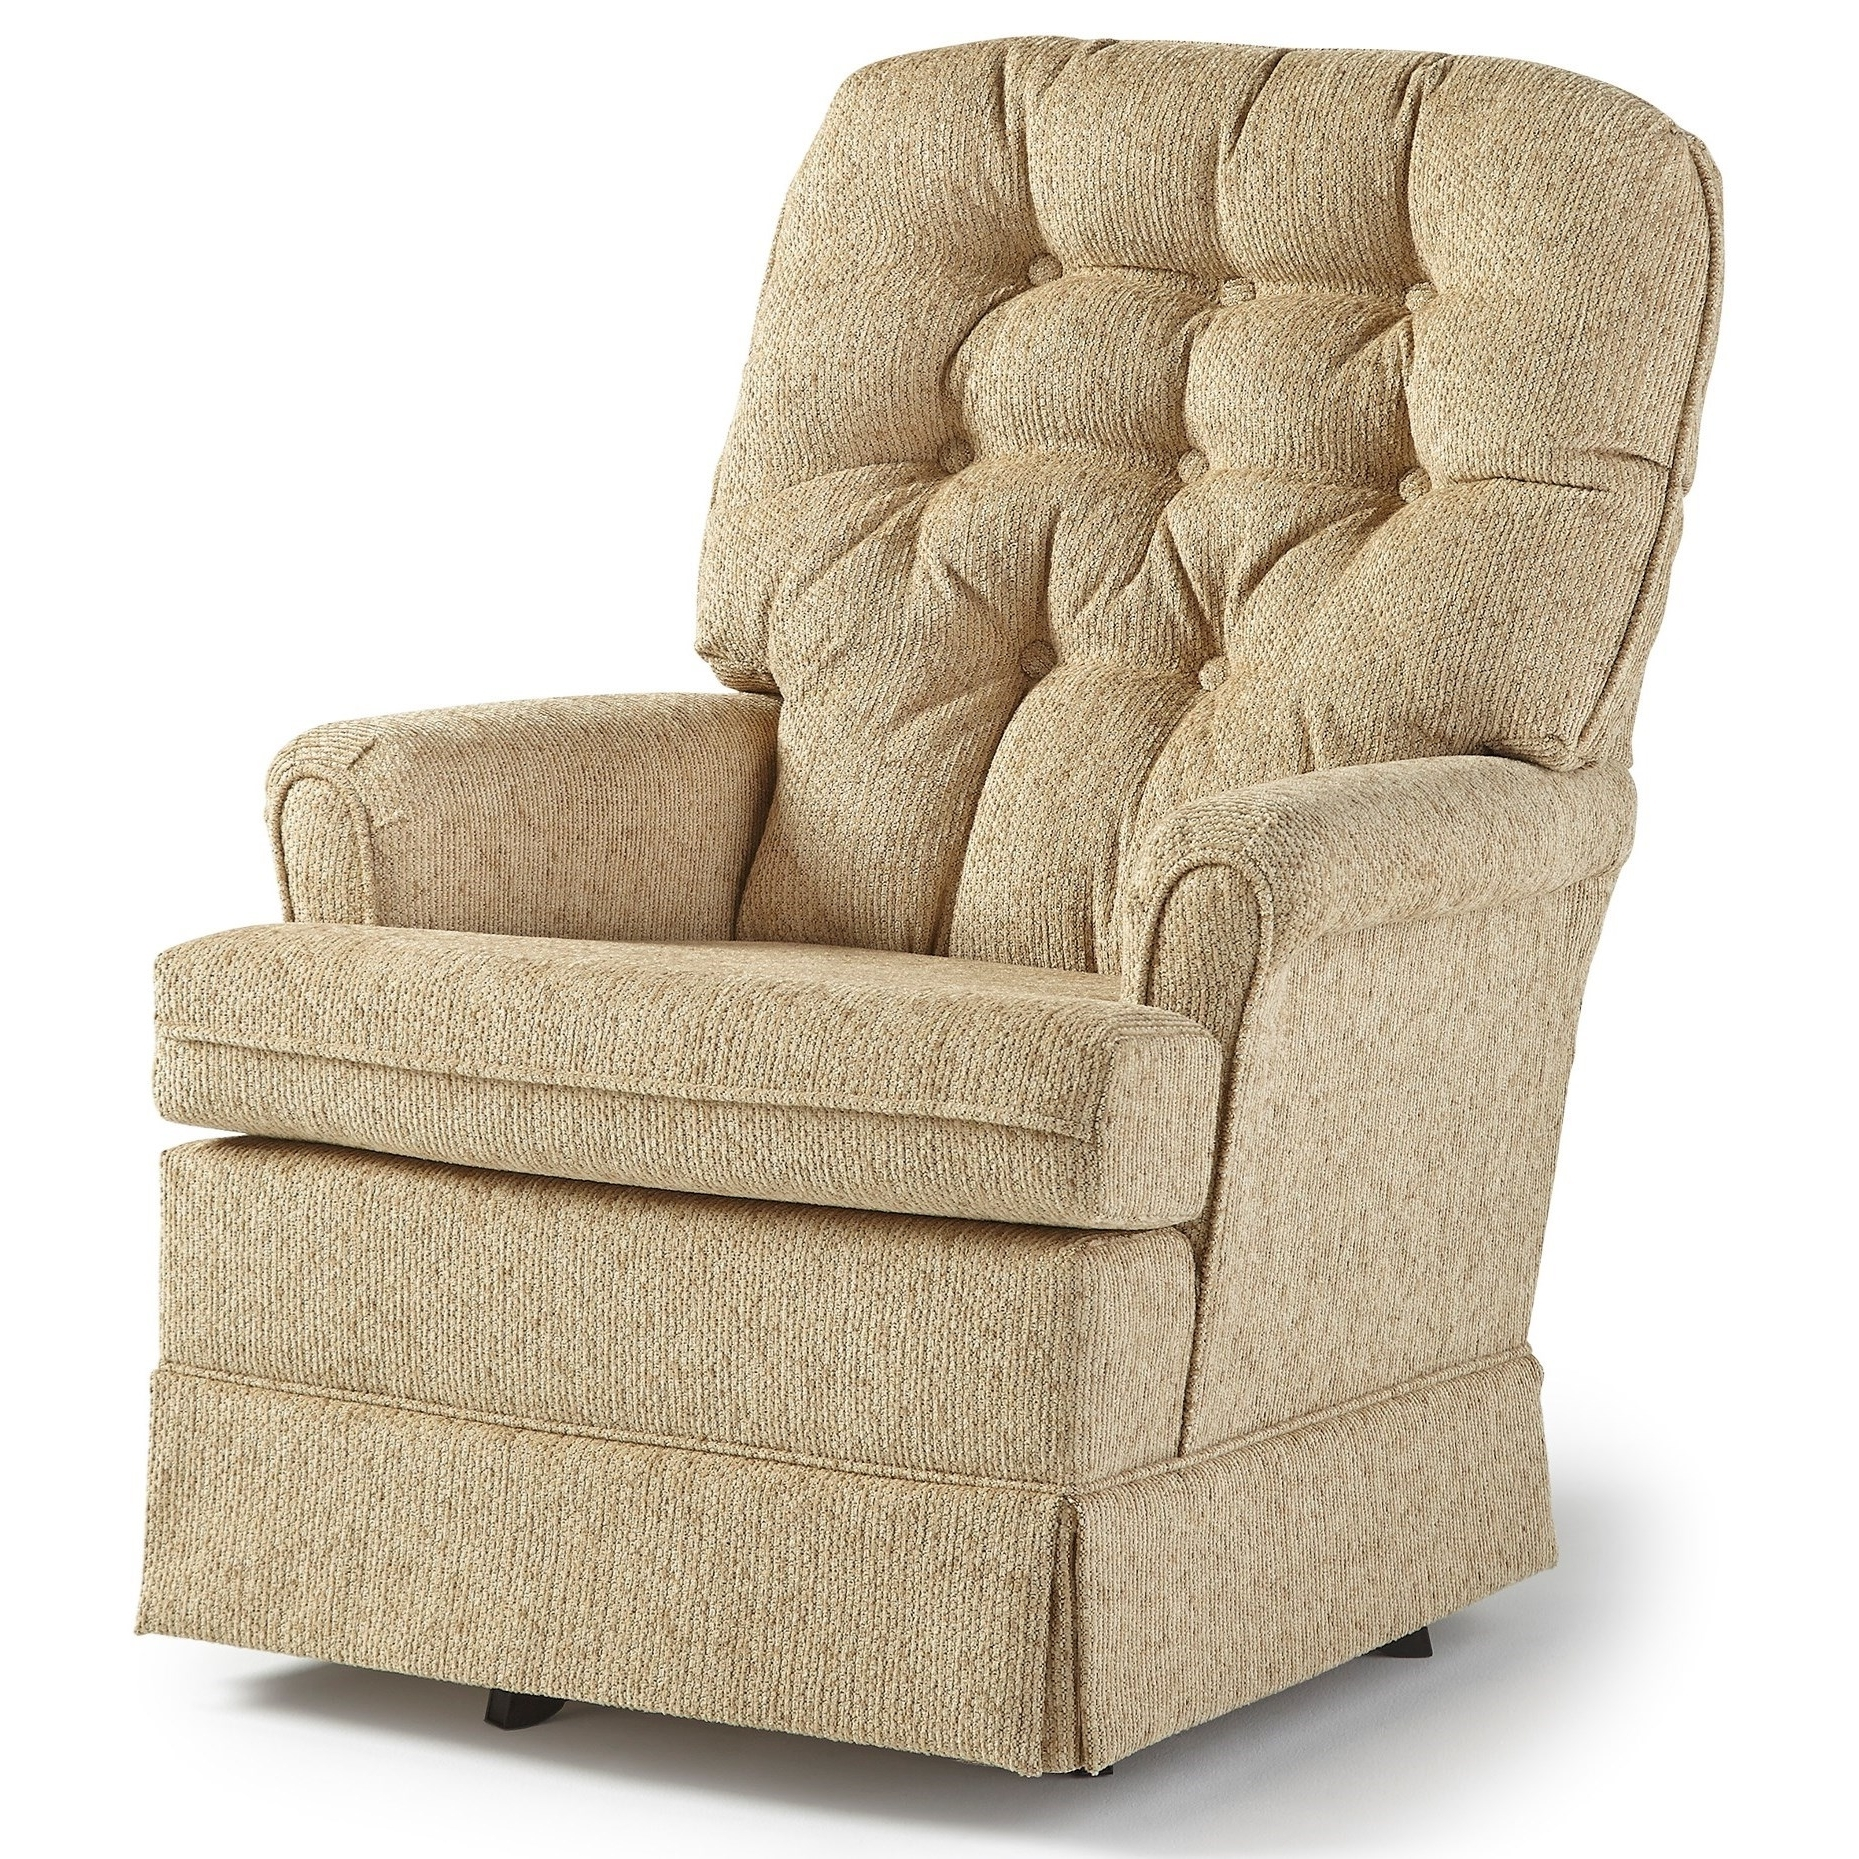 Best Home Furnishings Swivel Glide Chairs Joplin Swivel Rocker Chair Intended For Most Up To Date Swivel Rocking Chairs (View 2 of 15)